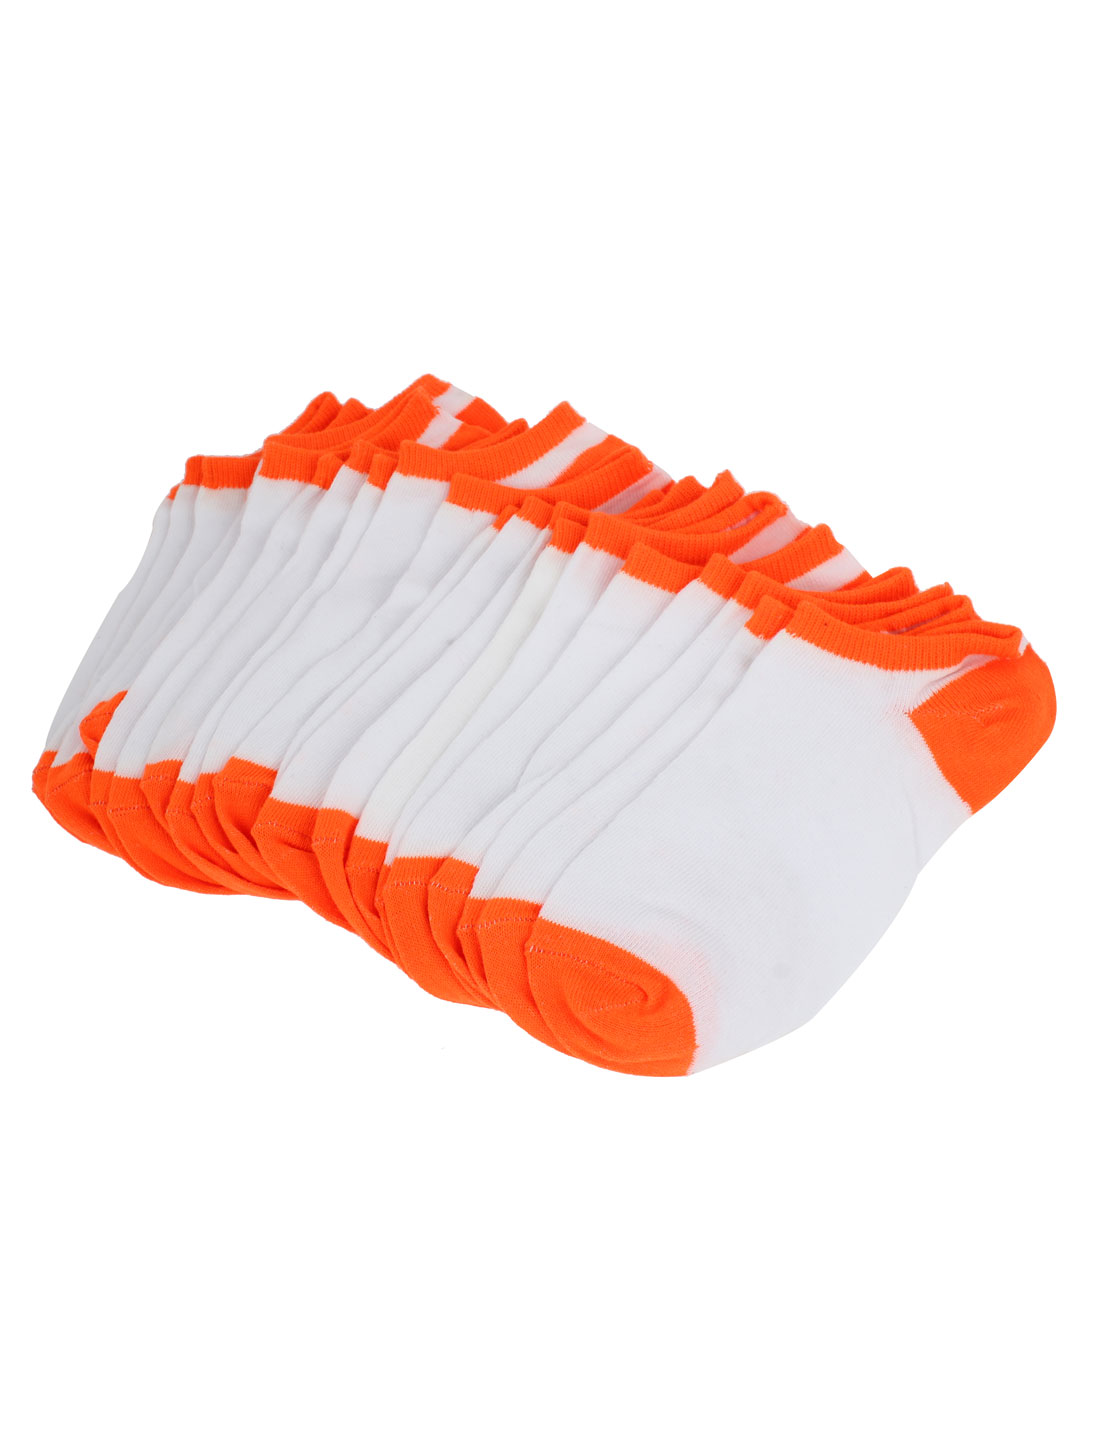 Women Warm Stretchy Cuff Short Low Cut Ankle Hosiery Socks White Orange 10 Pair